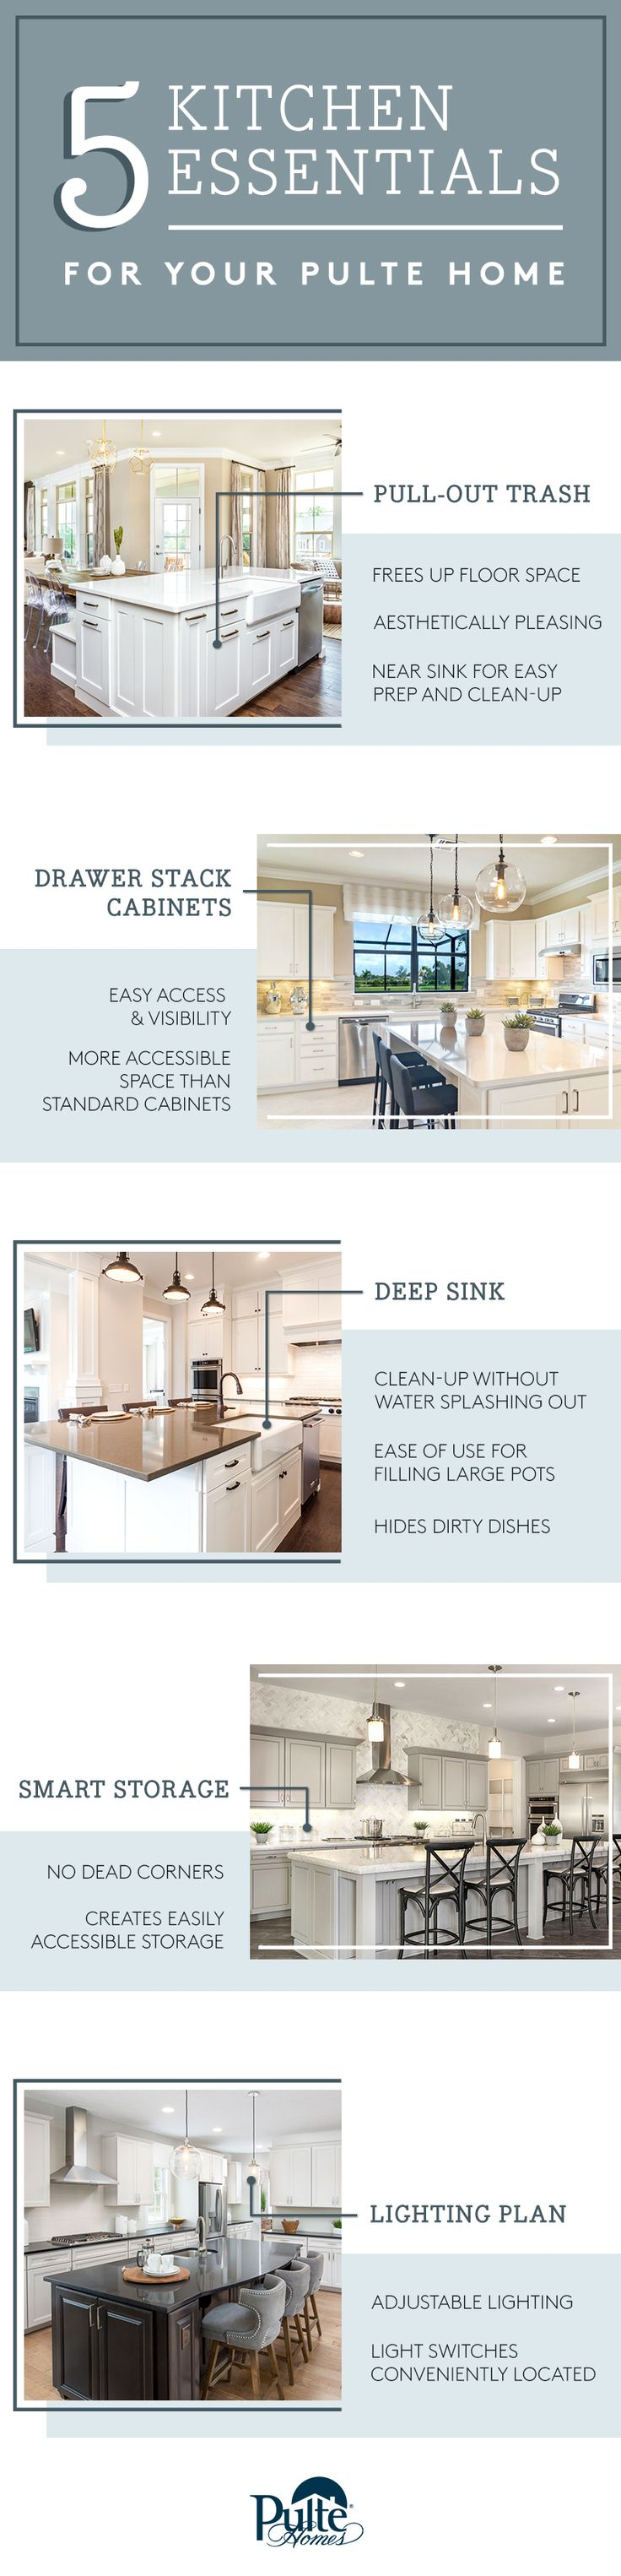 eye catching average kitchen size. Take A Look At Our 5 Simple Kitchen Design Elements. Eye Catching Average Size